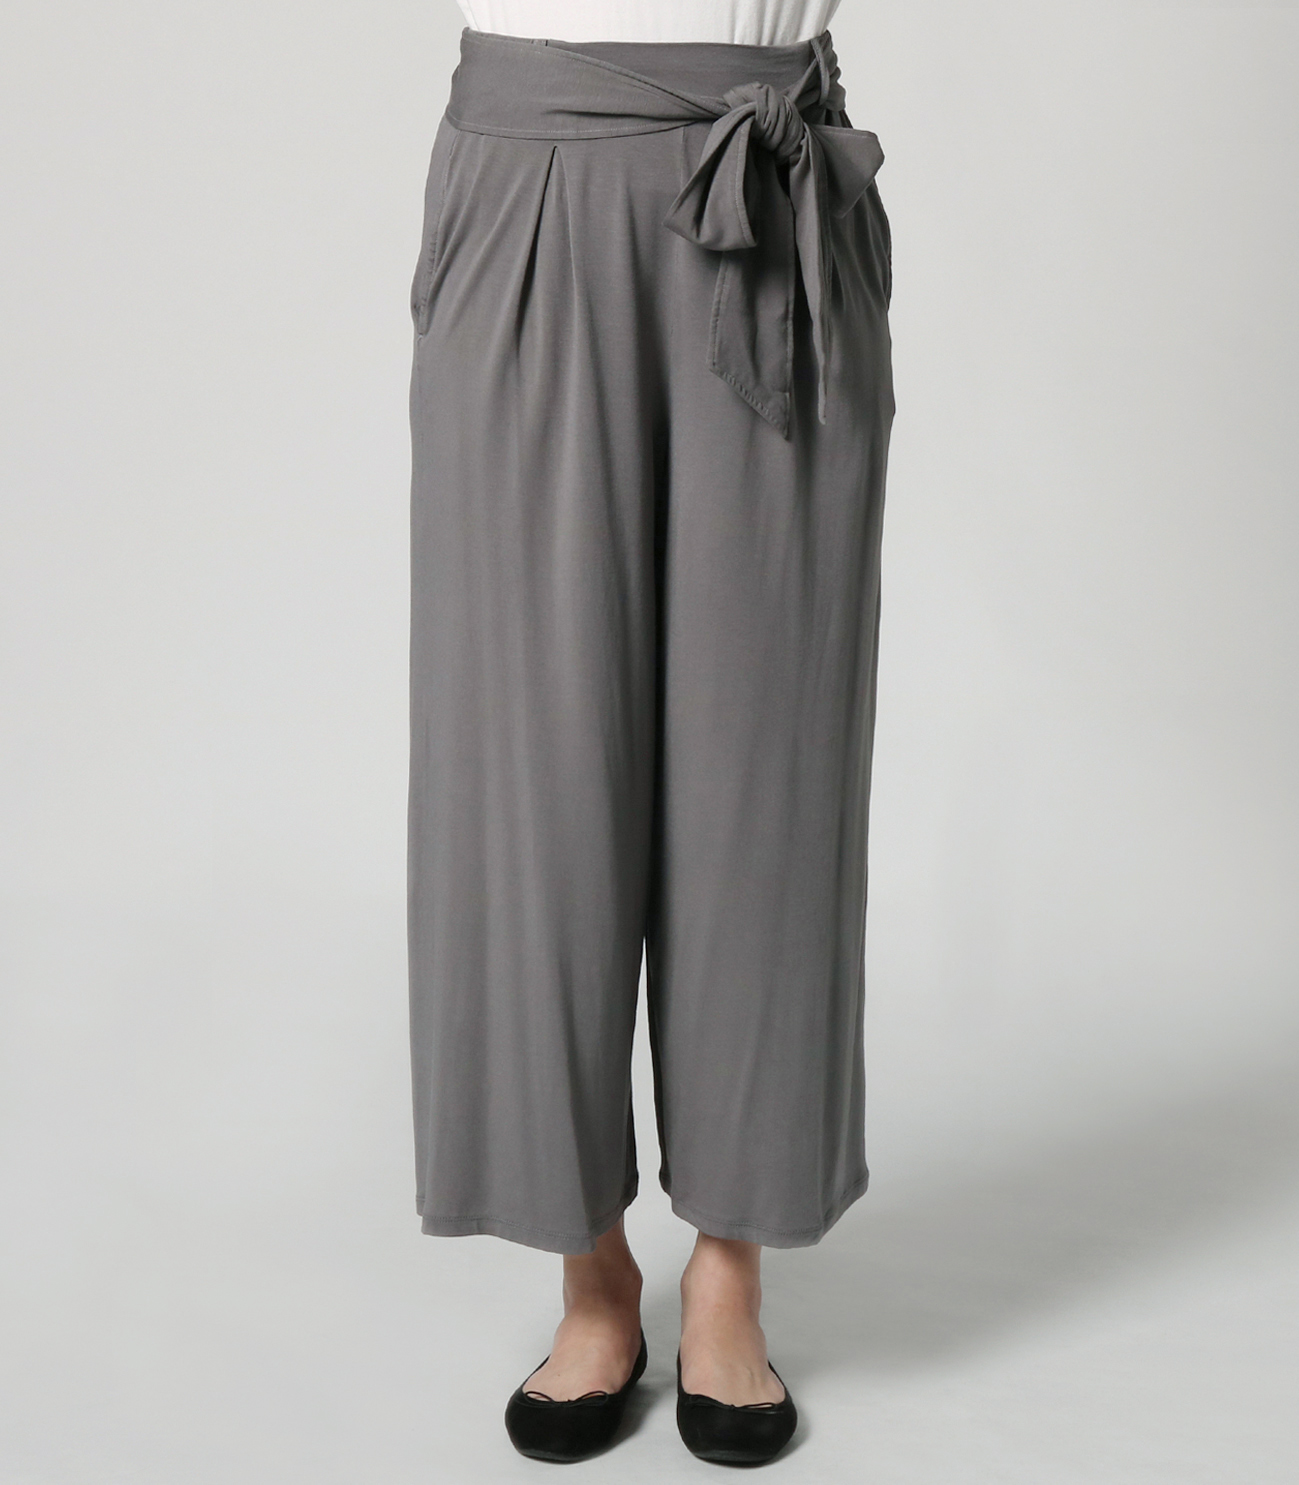 travel line tuck wide pant 詳細画像 shade 2